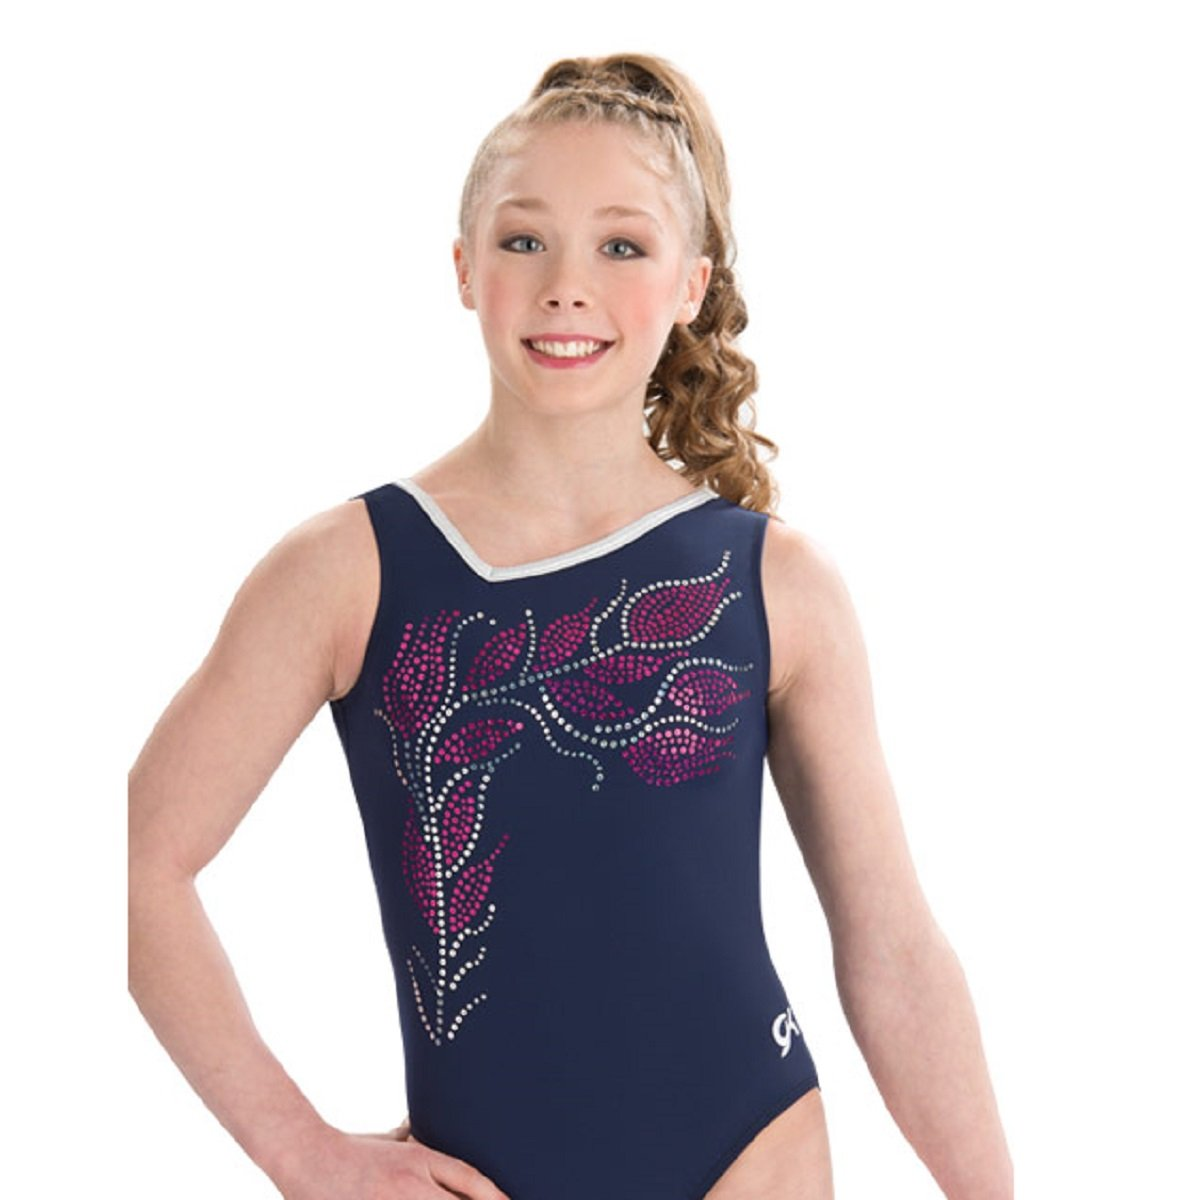 GK Elite Floral Vine Leotard Adult Small AS by GK Elite